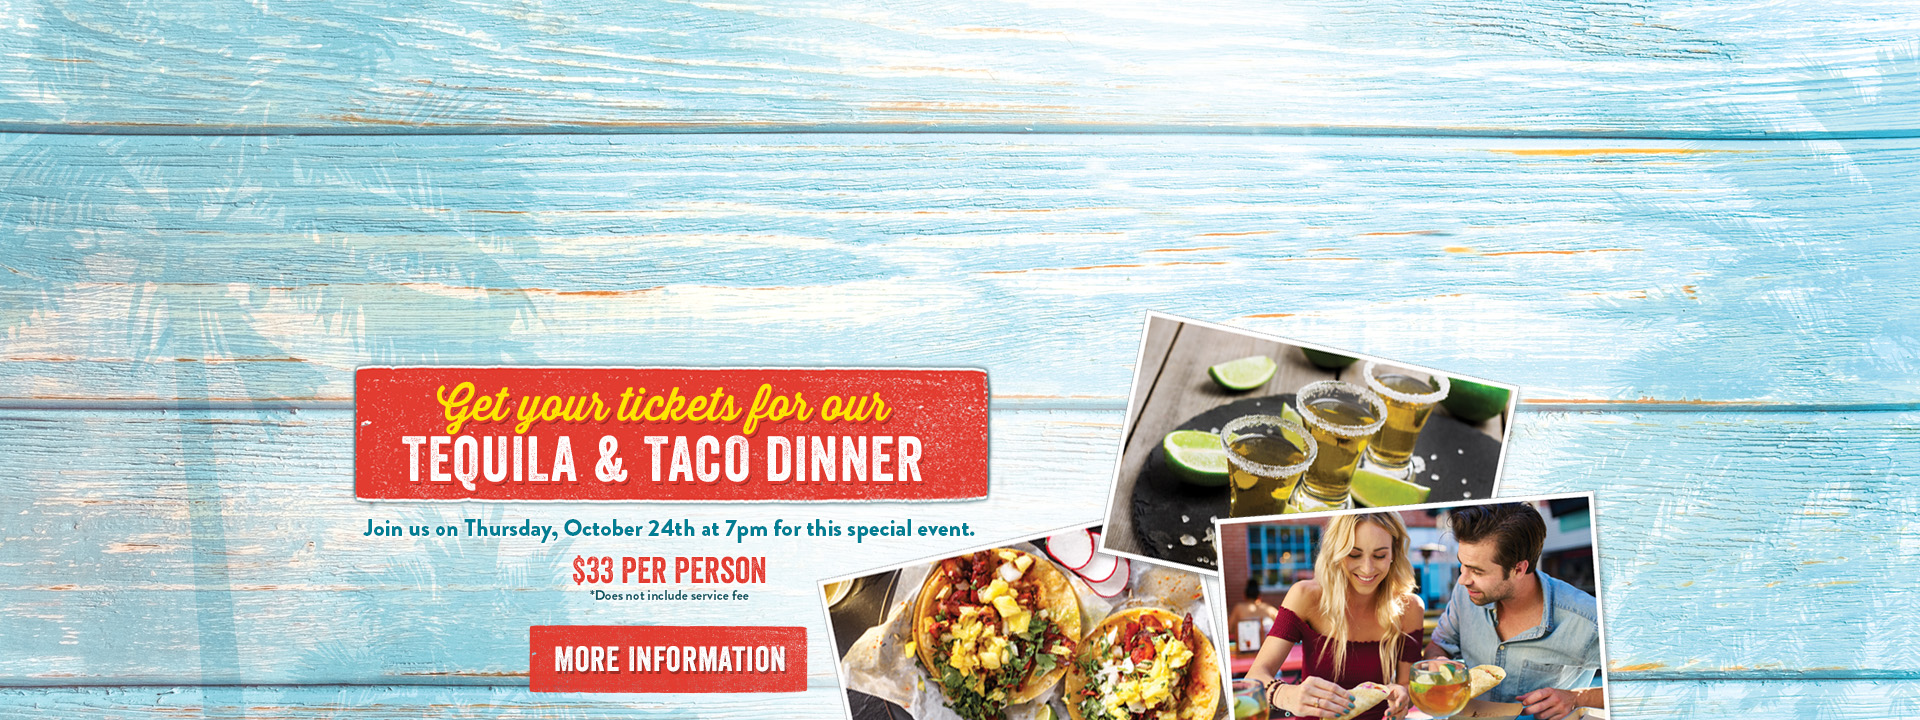 Get your tickets for our tequila & taco dinner